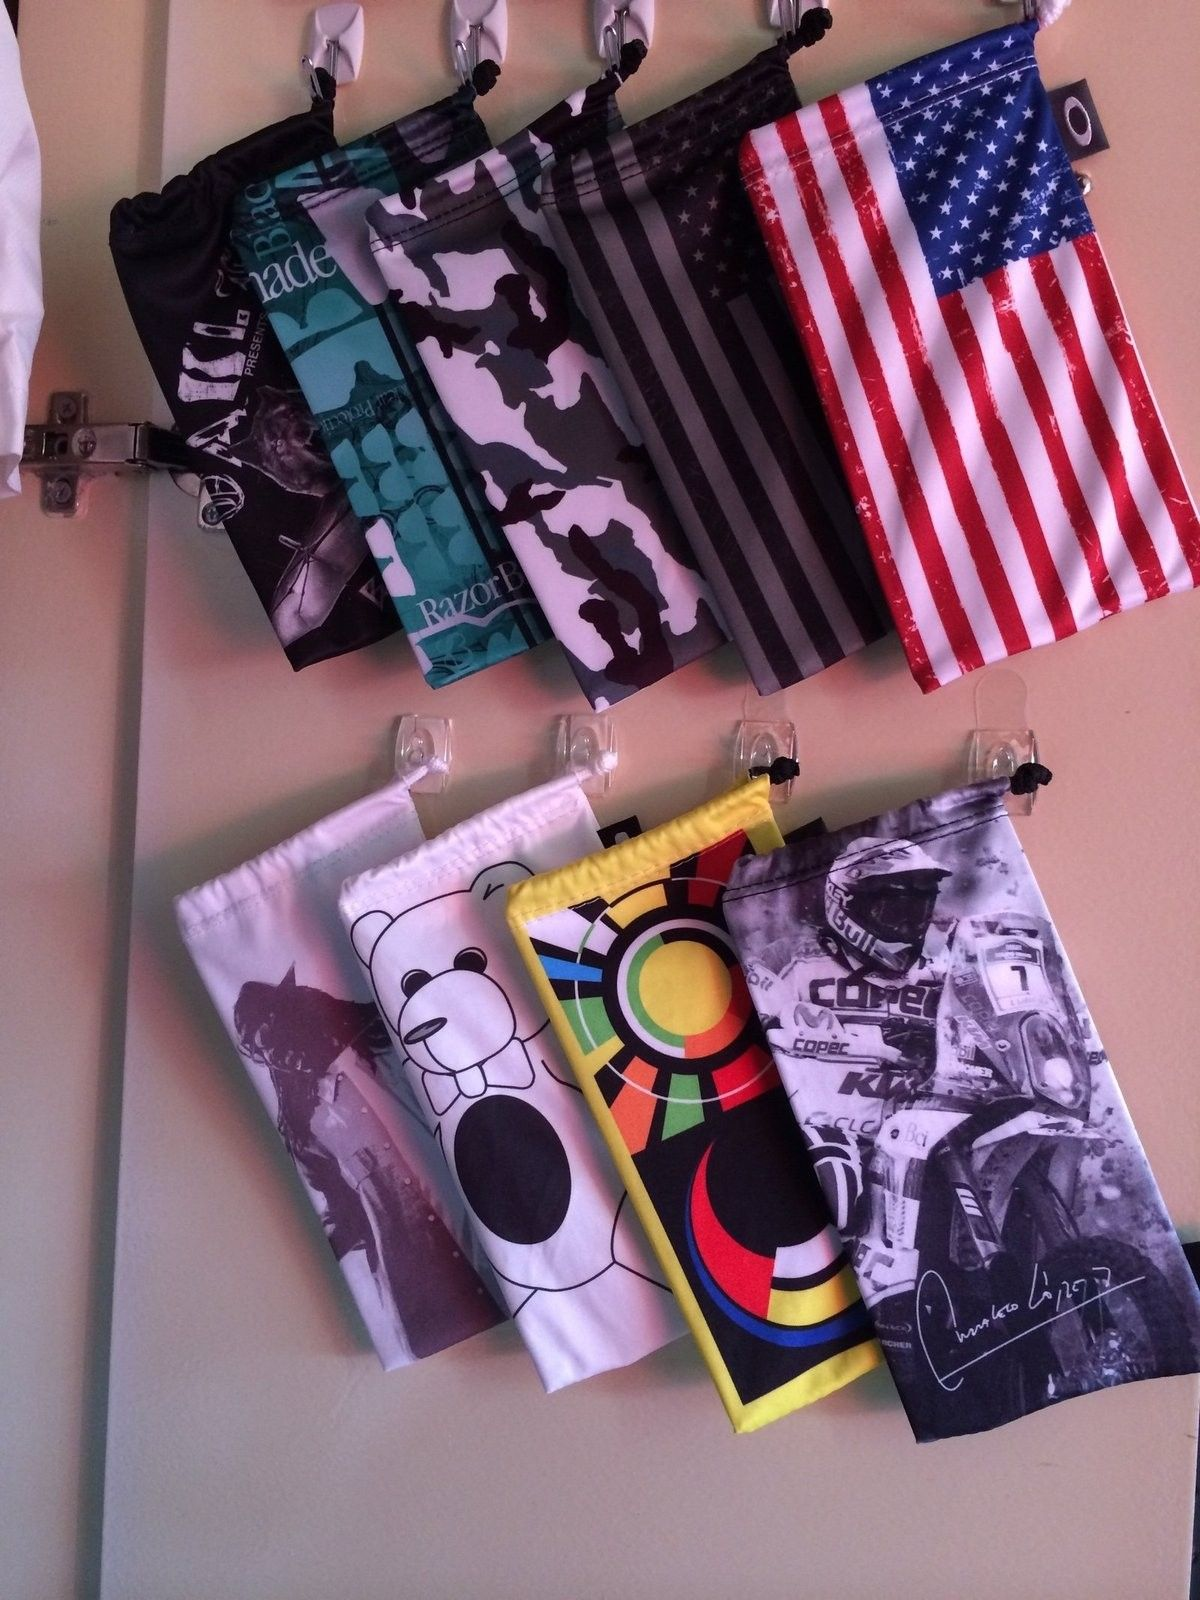 My oakley pouch collection - image.jpg